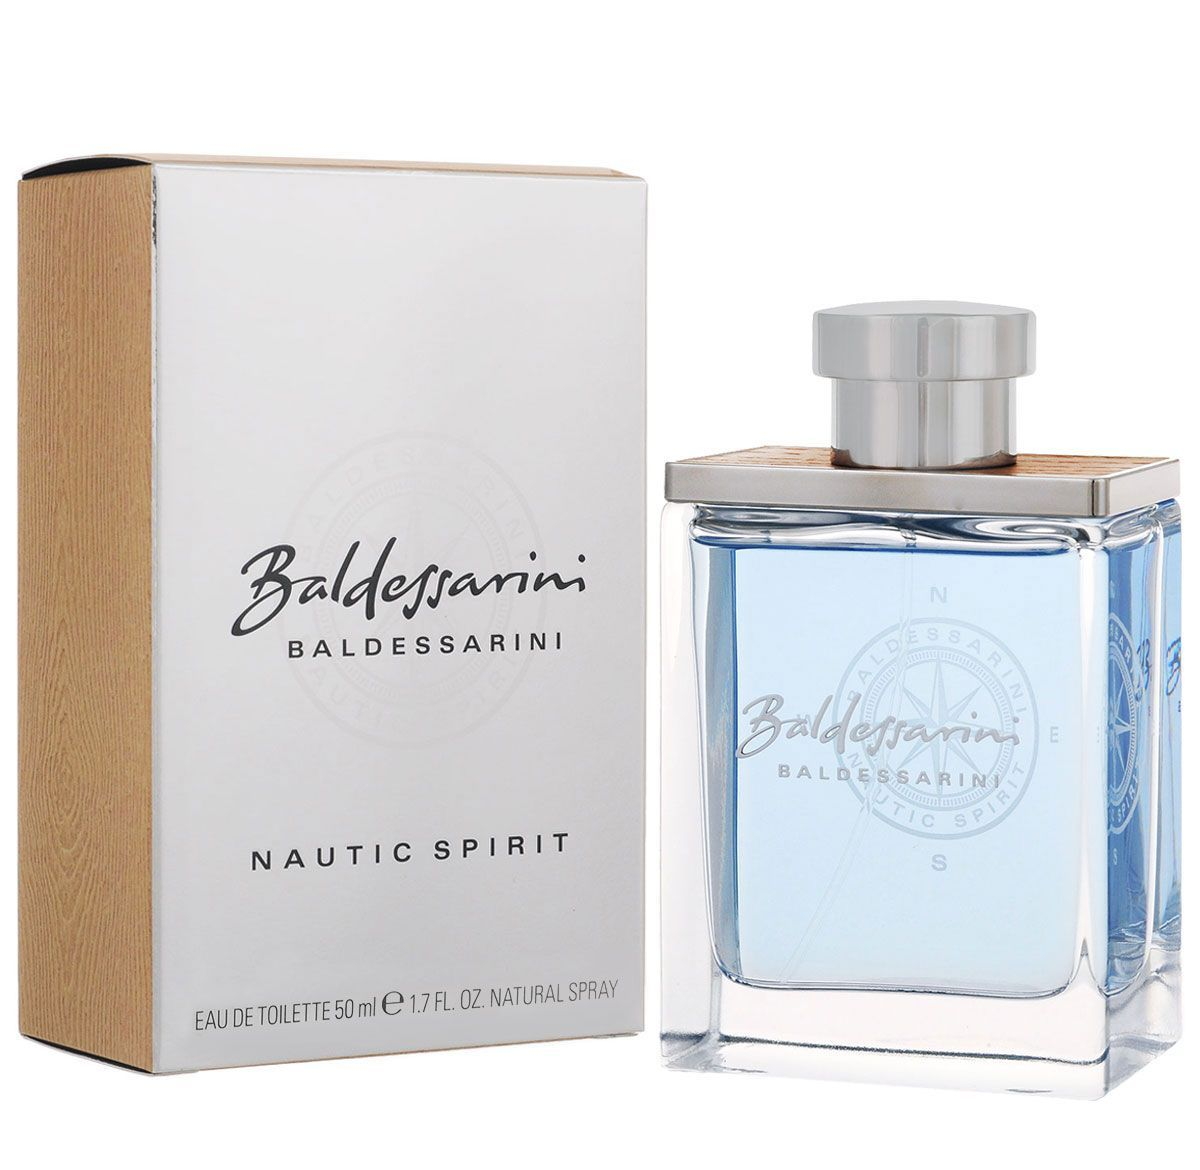 Туалетная вода Baldessarini Nautic Spirit 50ml фото